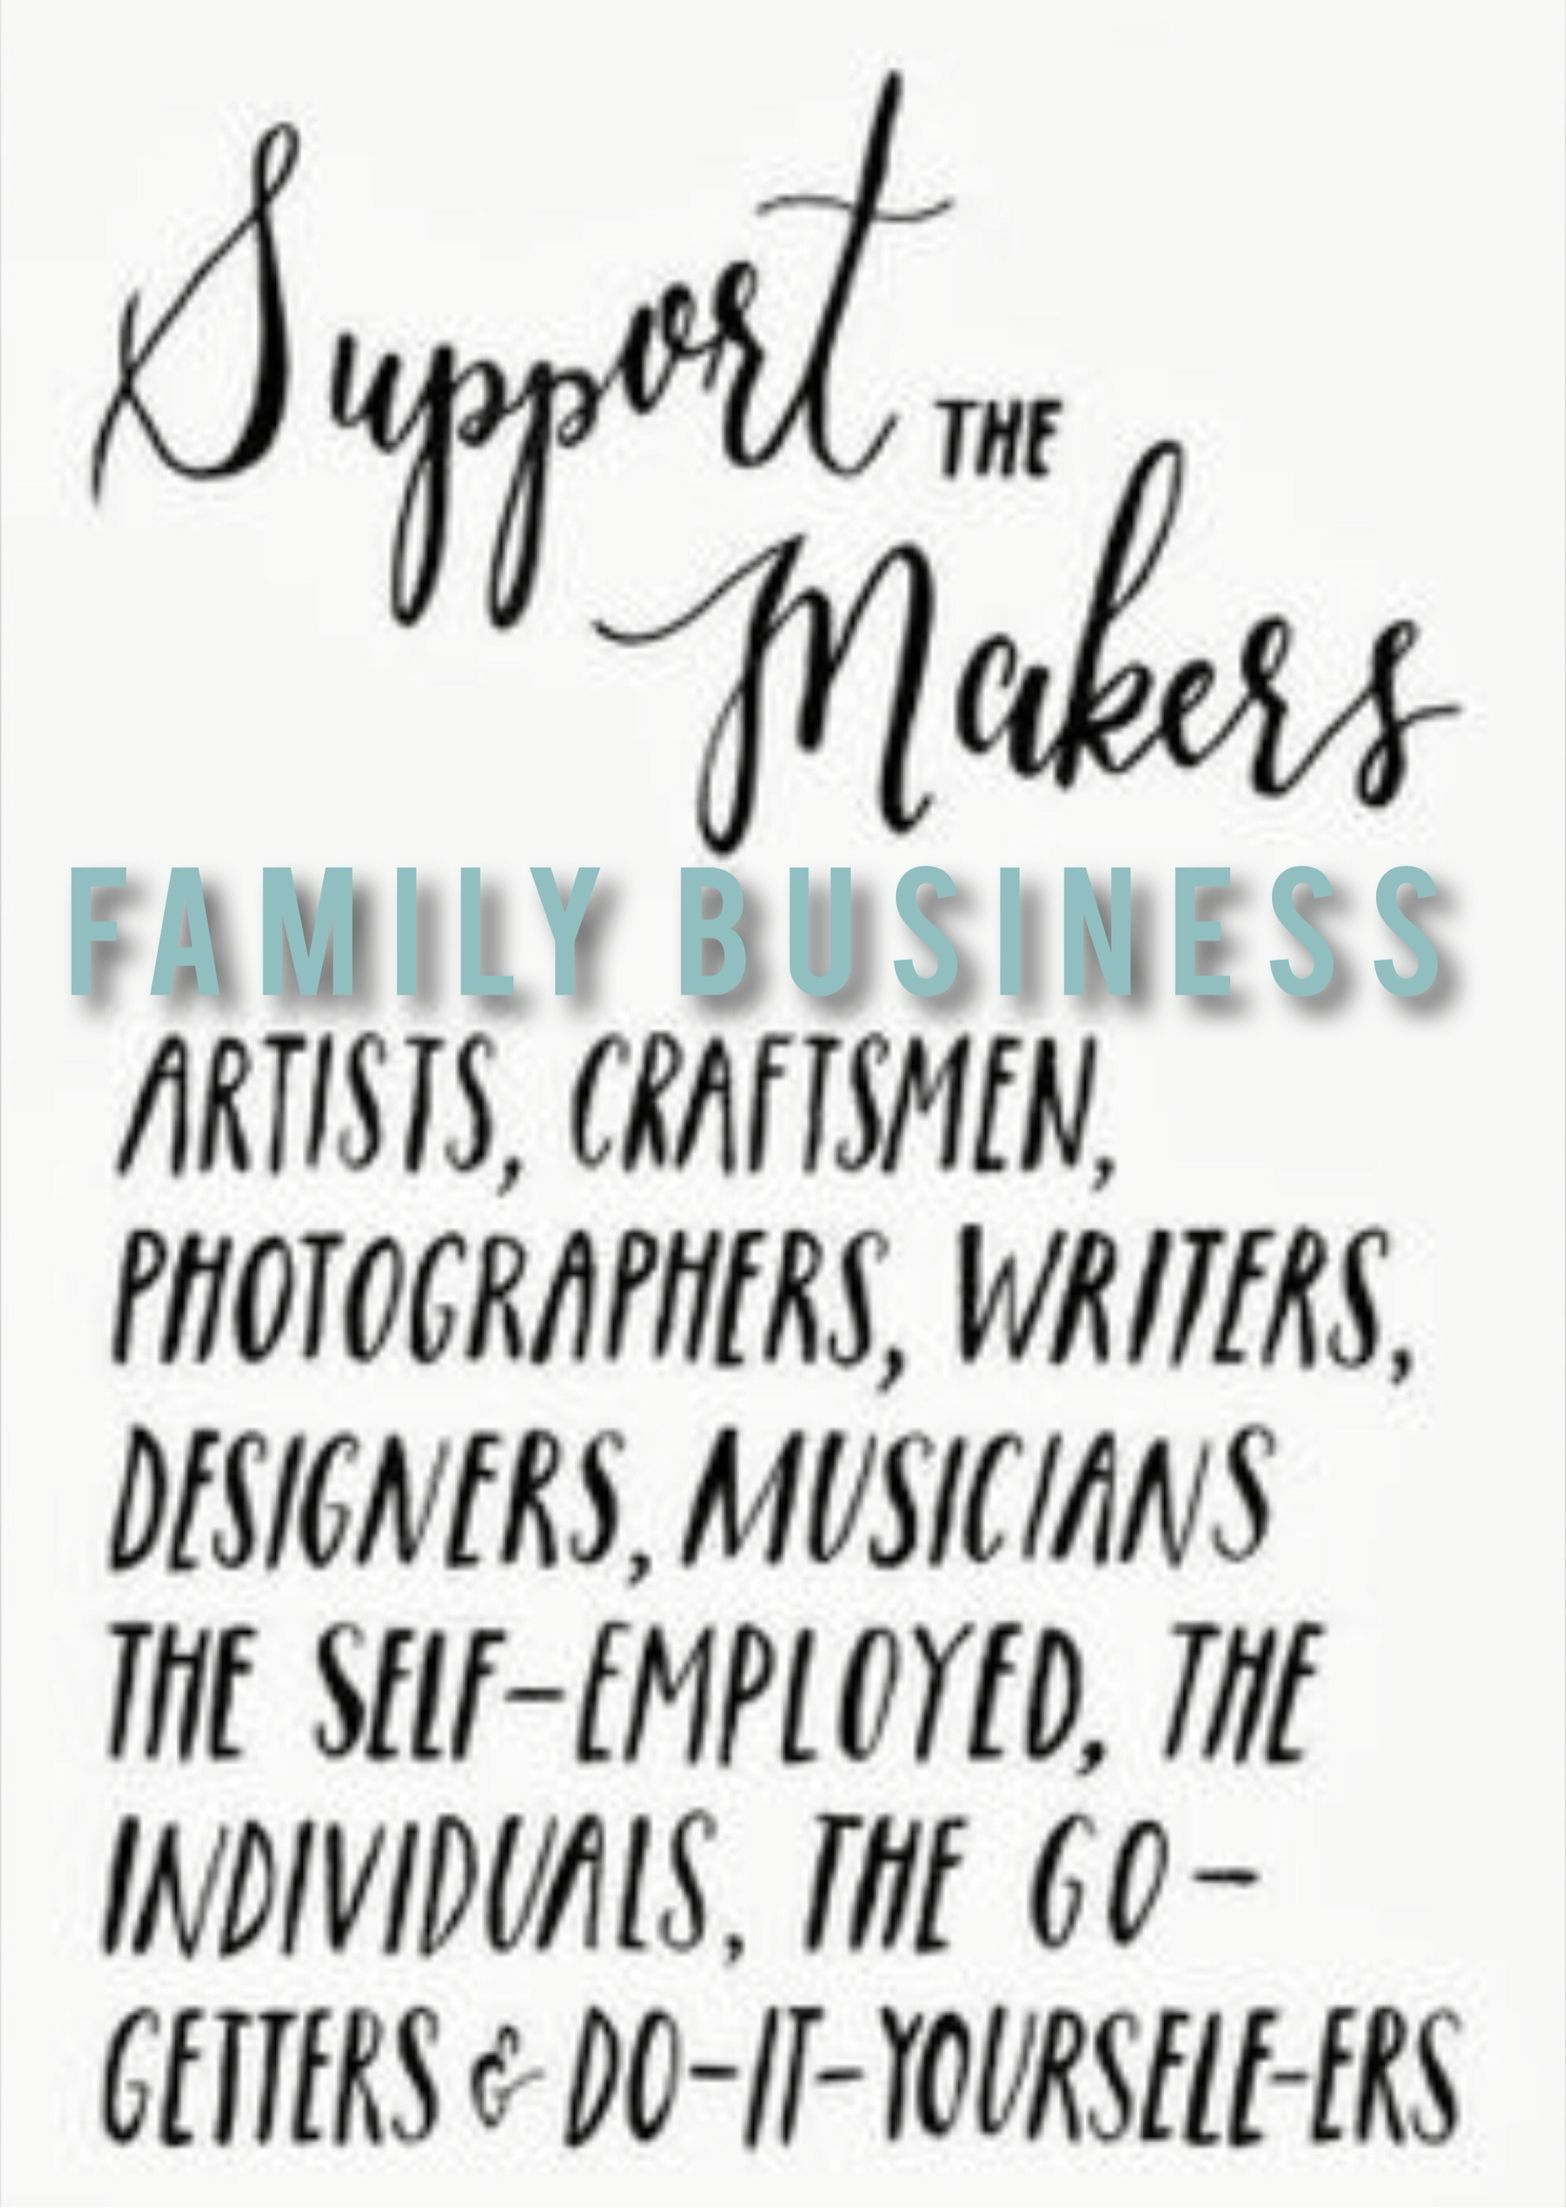 Family Business In The Making Man Is There Some Haters But I Am Just Sitting Back Laughing Behind It All Lol Quotes Words Quotes Encouragement Quotes